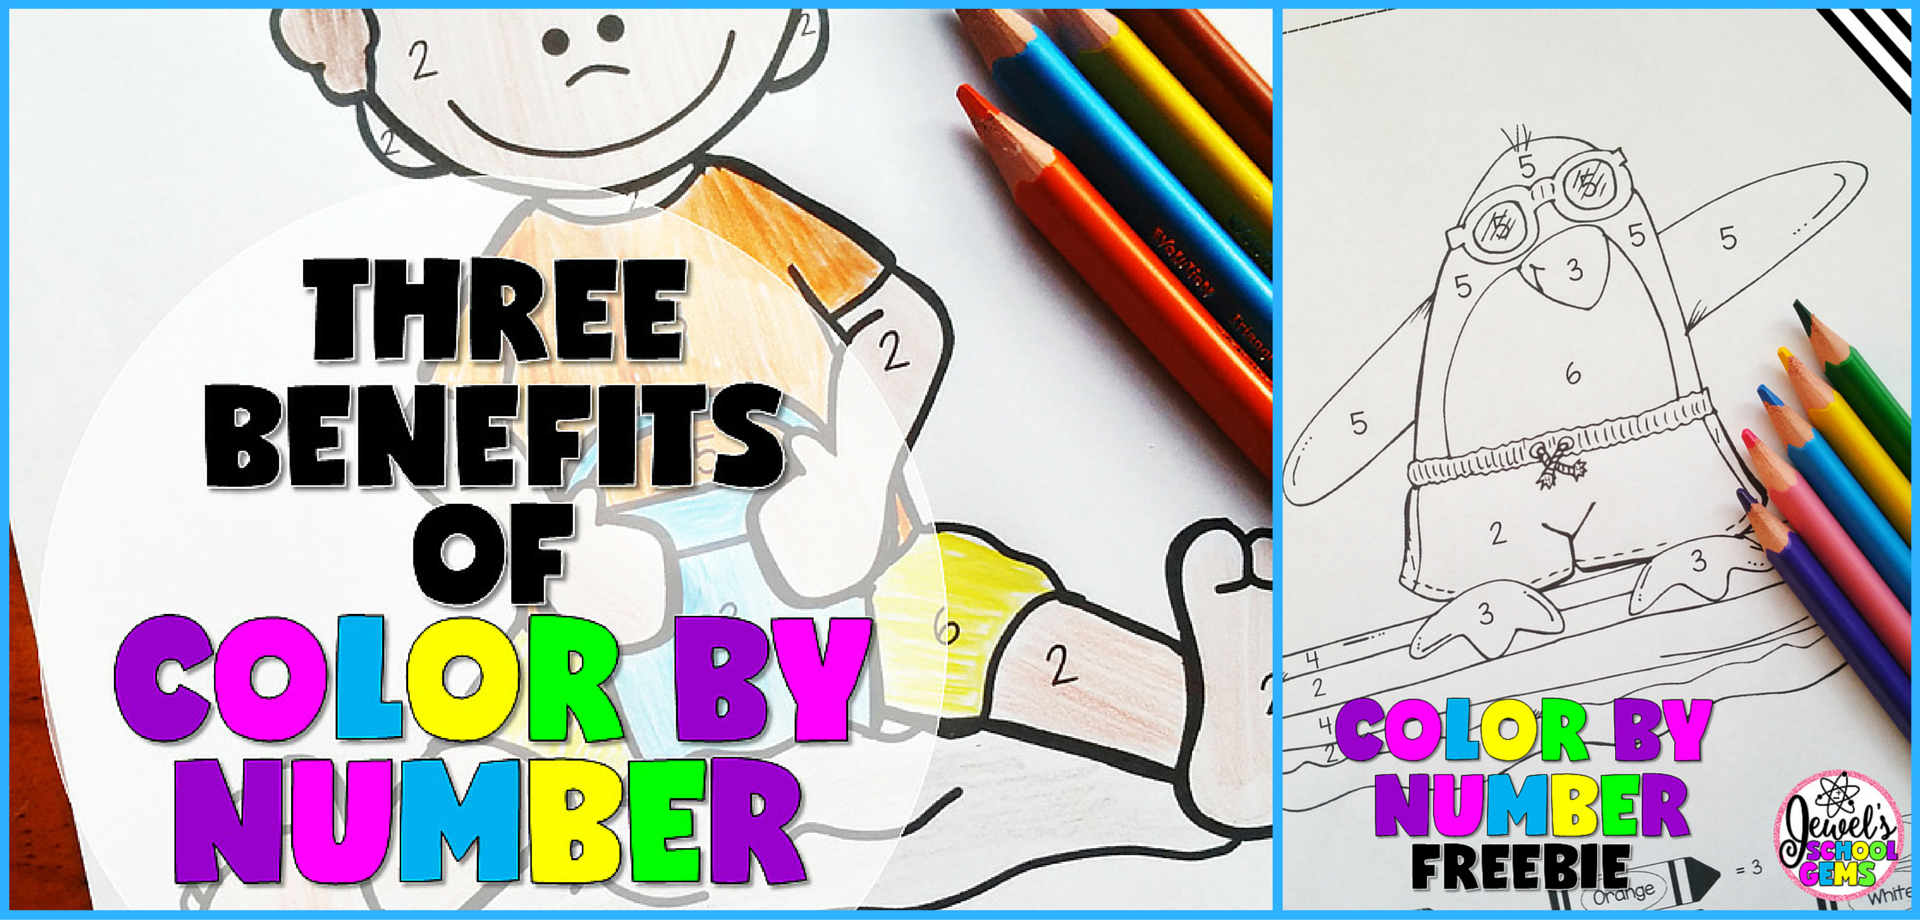 3 Benefits Of Color By Number Free Coloring Sheets